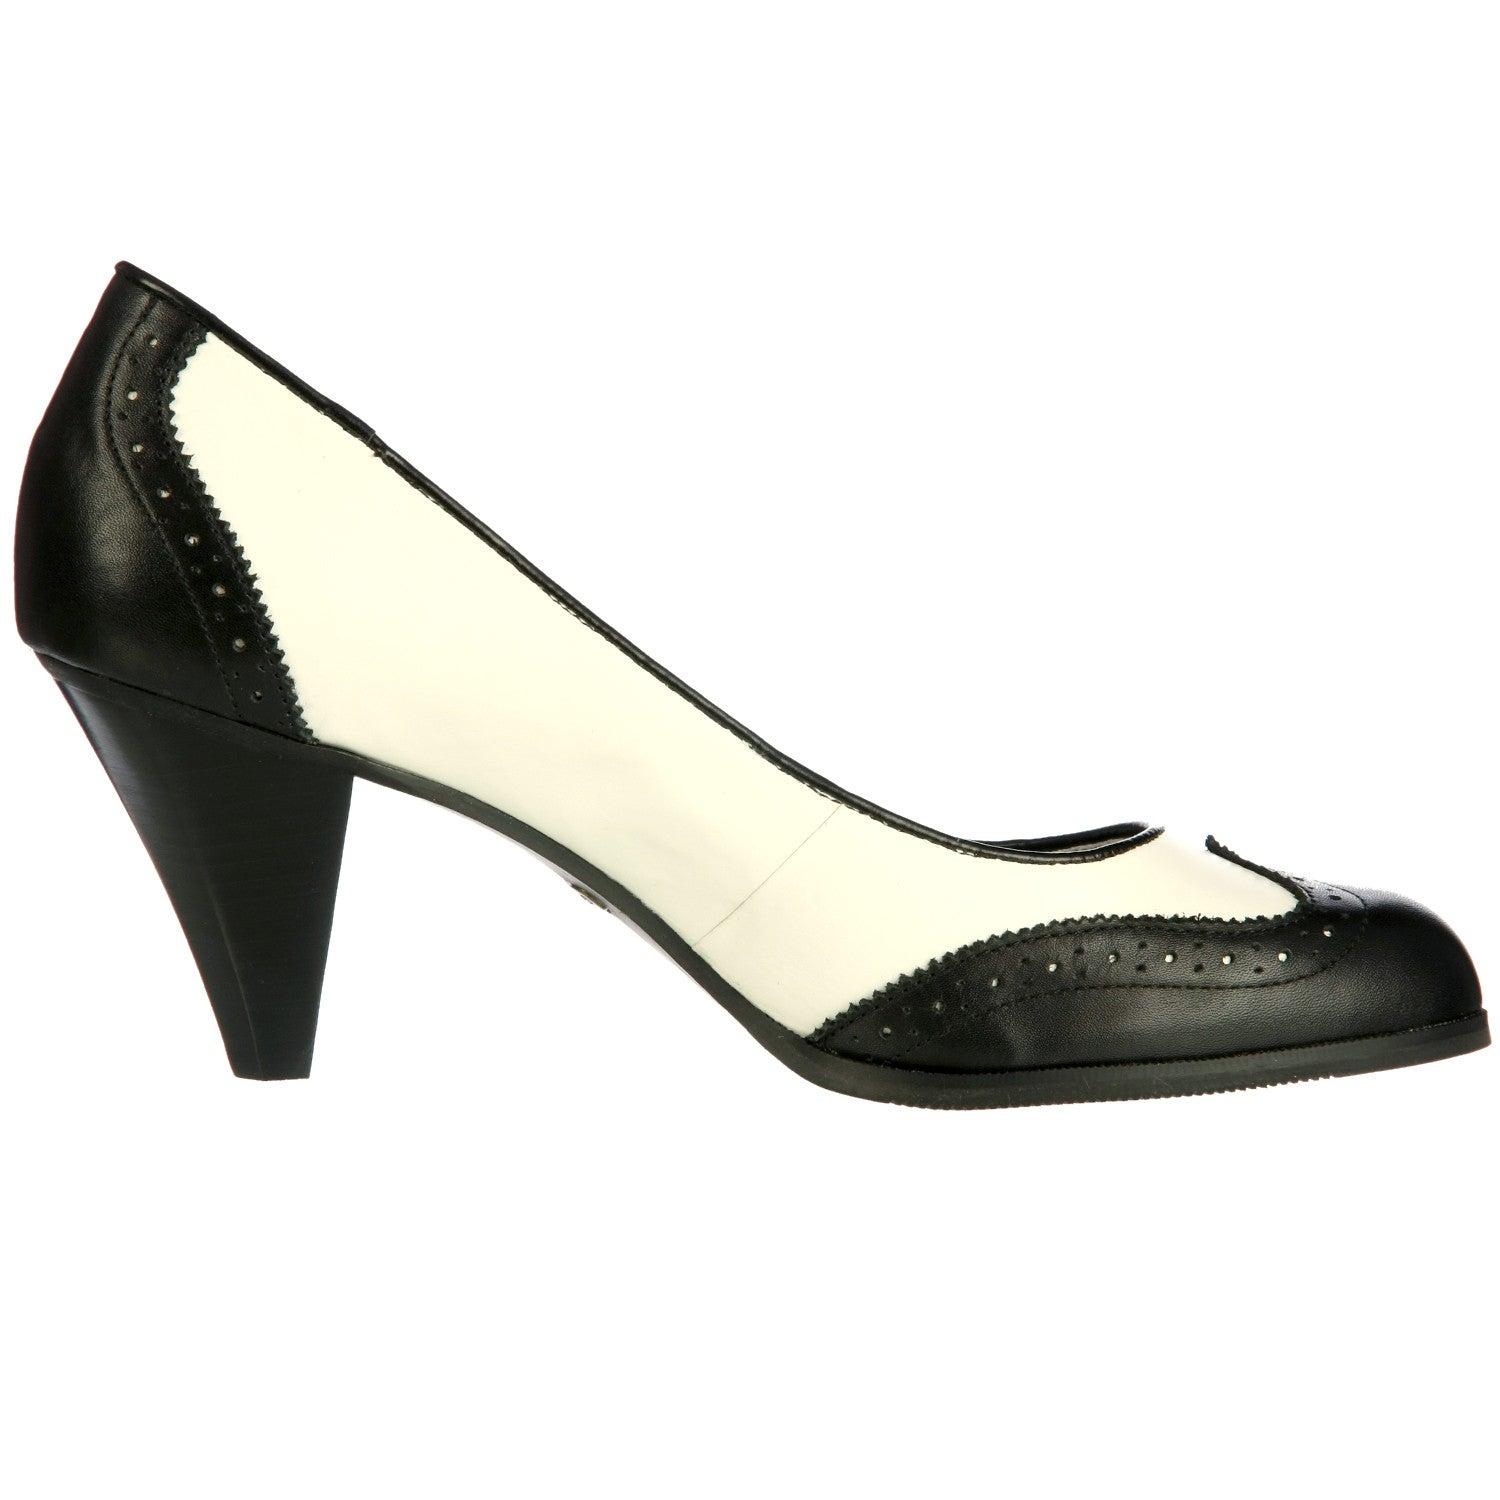 e1ca298a9fef Shop Bass Women s  Greenwood  Wing Tip Spectator Pumps - Free Shipping On  Orders Over  45 - Overstock - 6240385